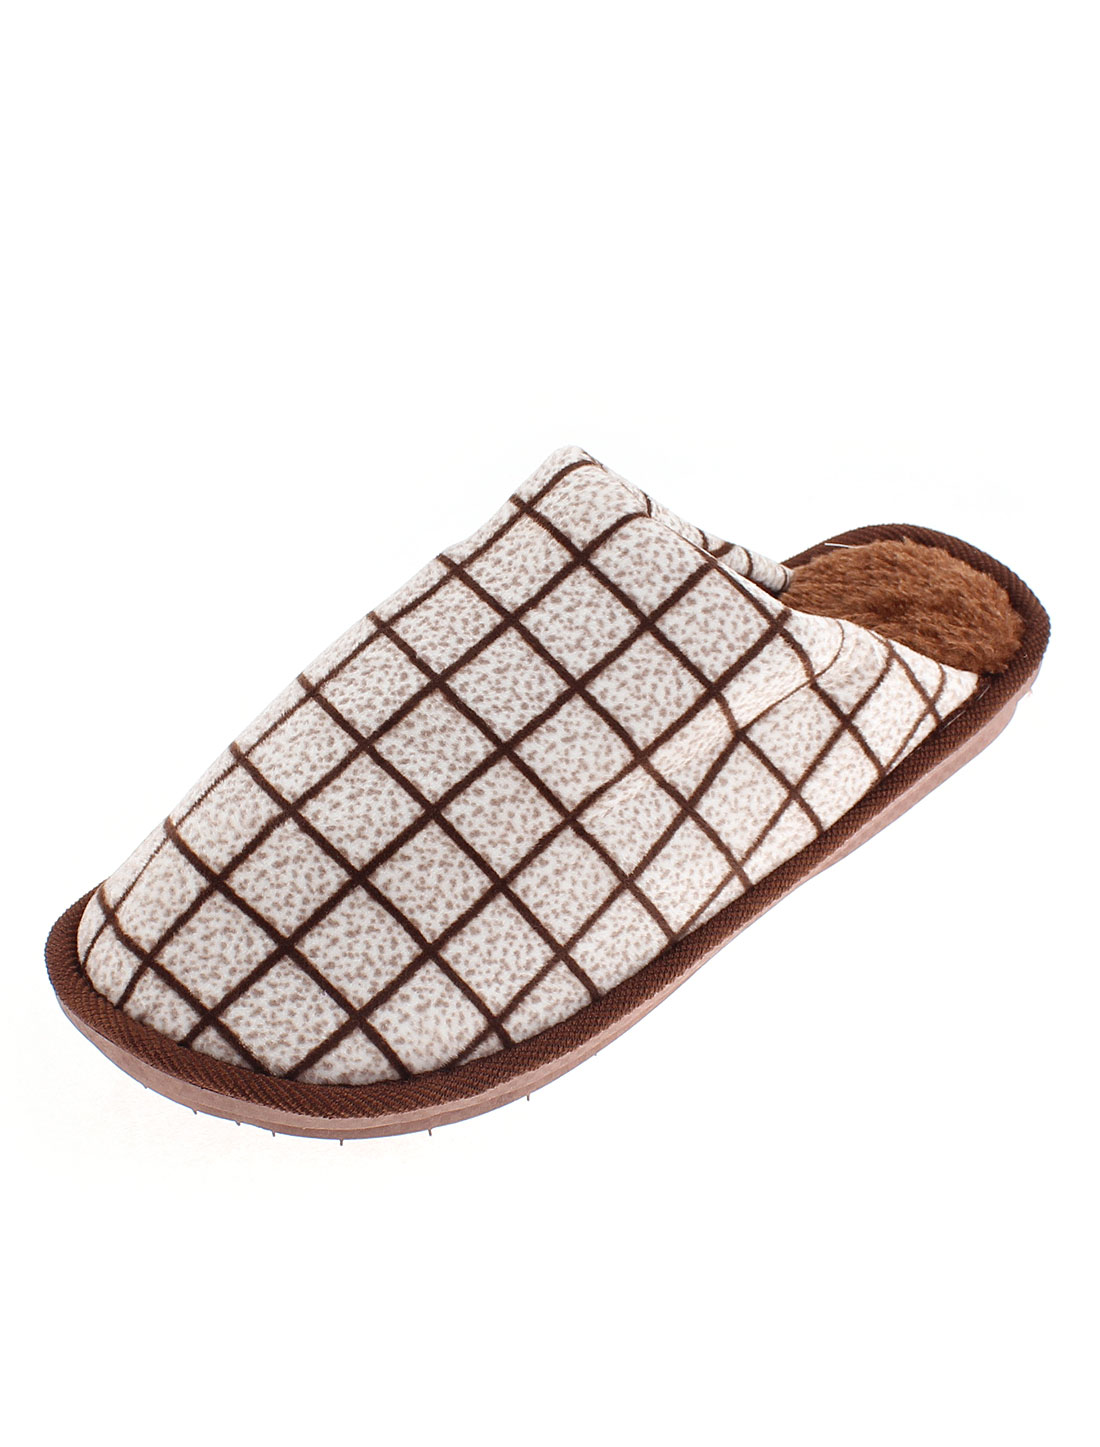 Women Grid Pattern Non-skid Casual Warmer Cotton Slippers Chocolate Color US 9